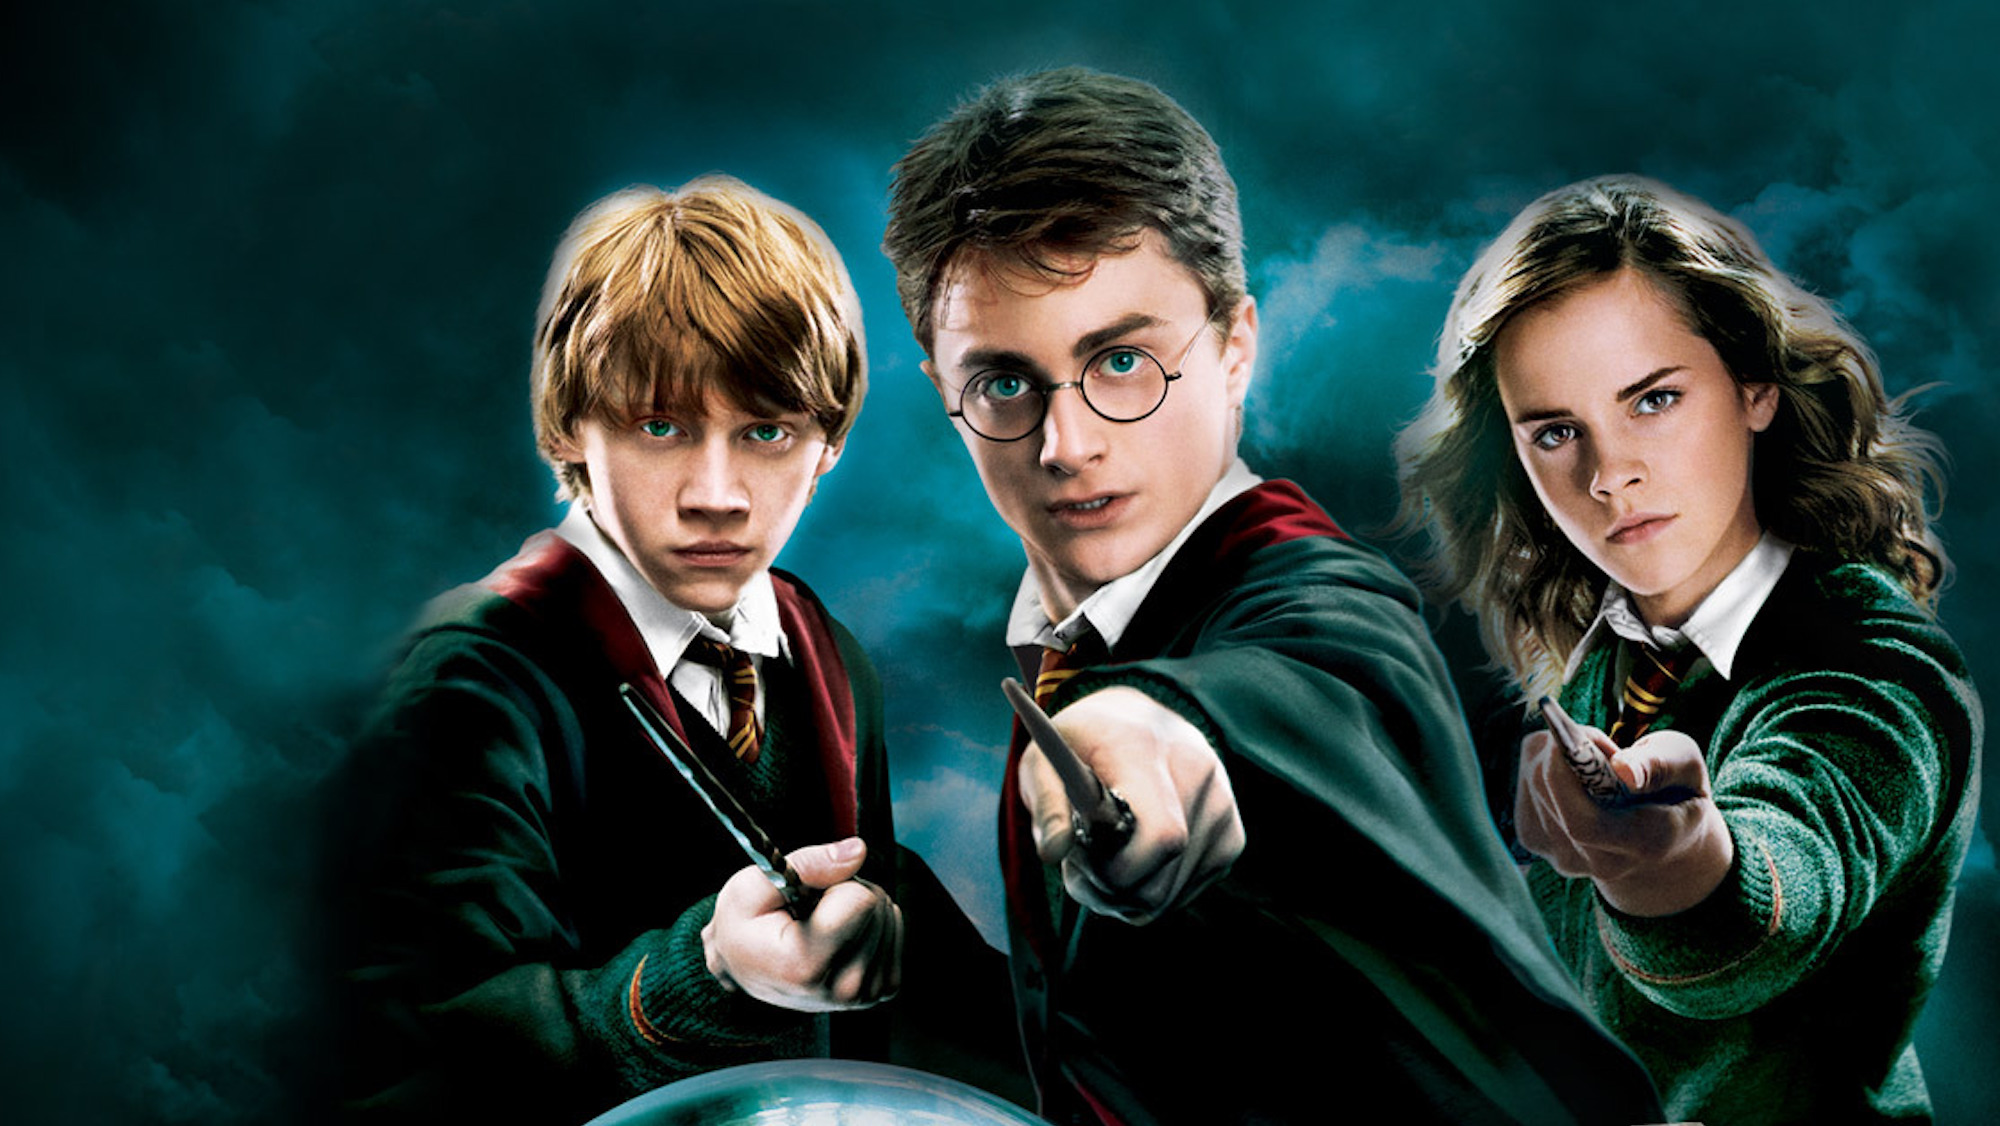 watch harry potter recut to match the force awakens trailer anglophenia bbc america. Black Bedroom Furniture Sets. Home Design Ideas